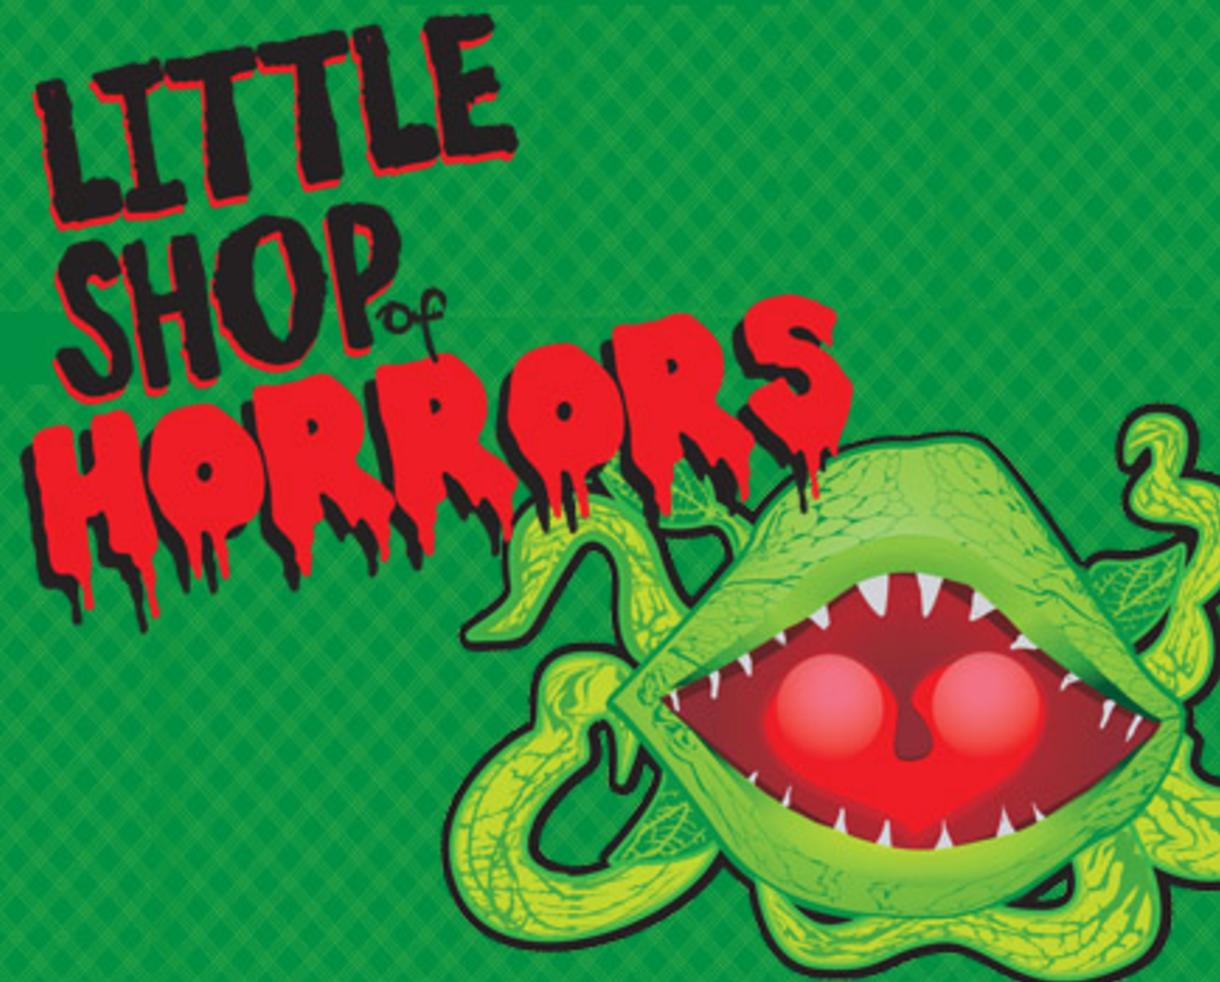 little shop of horrors at olney theatre certifikid